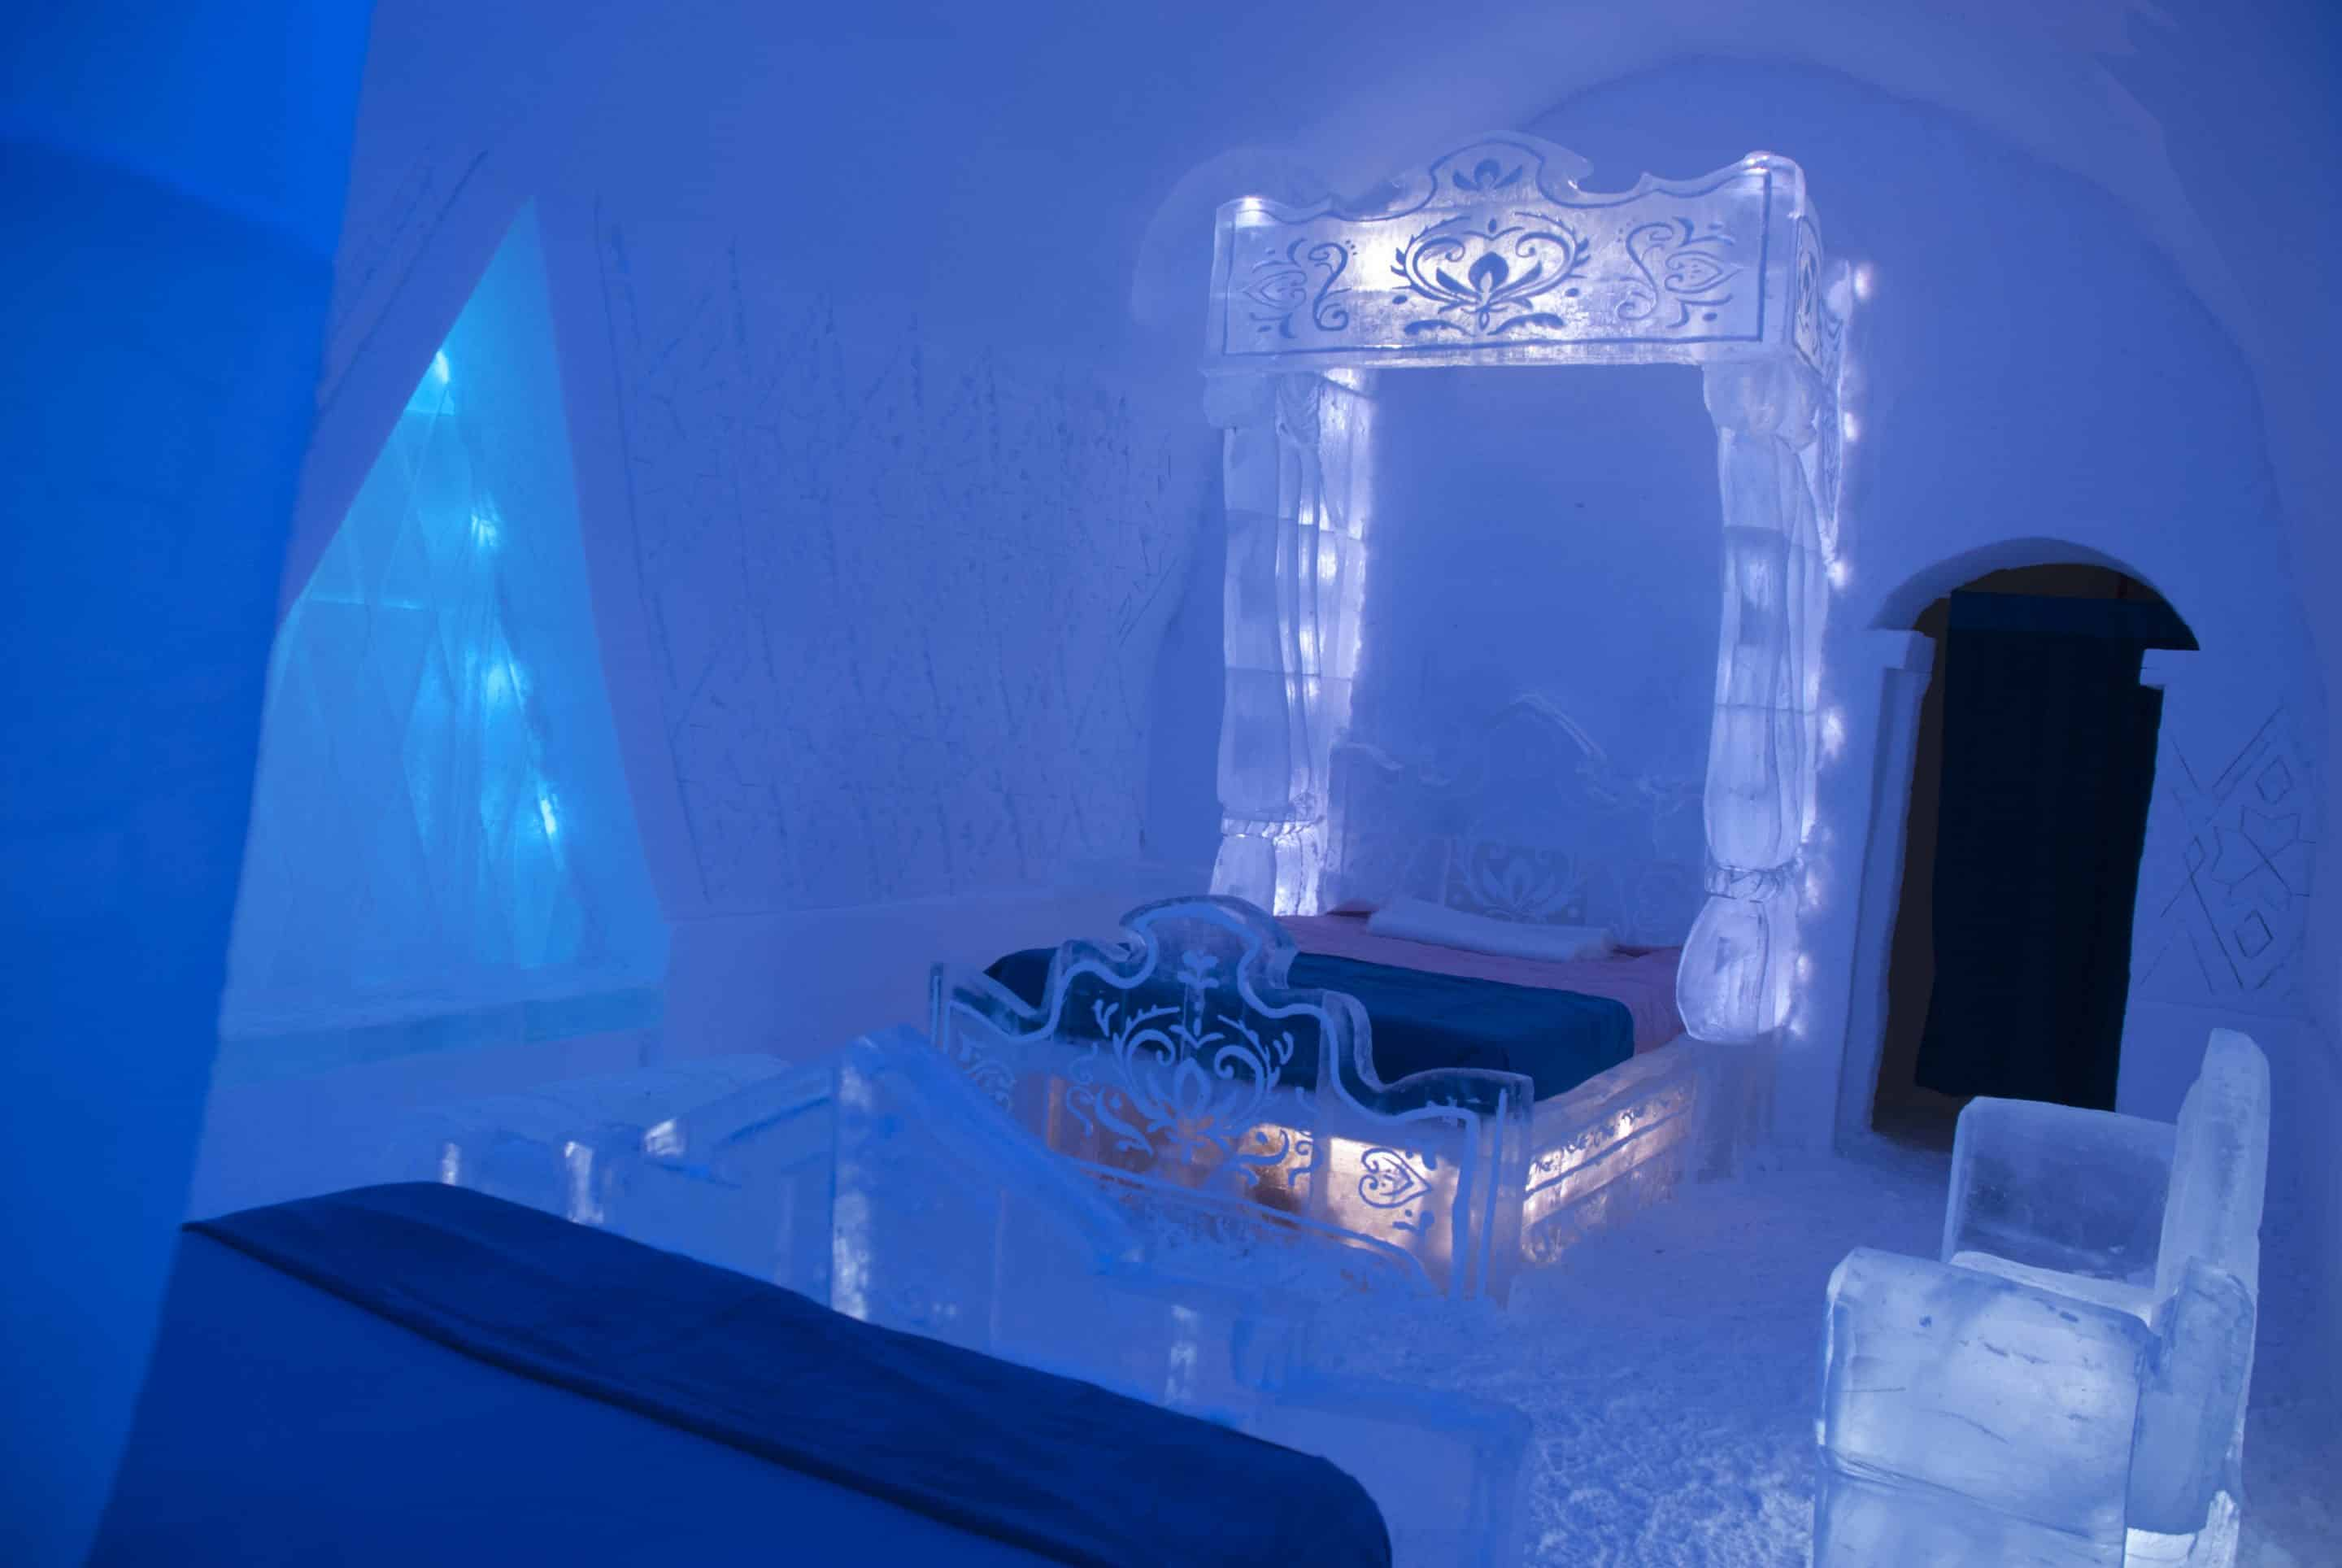 Disney Frozen Themed Guest Suite at Quebec City's Hotel De Glace